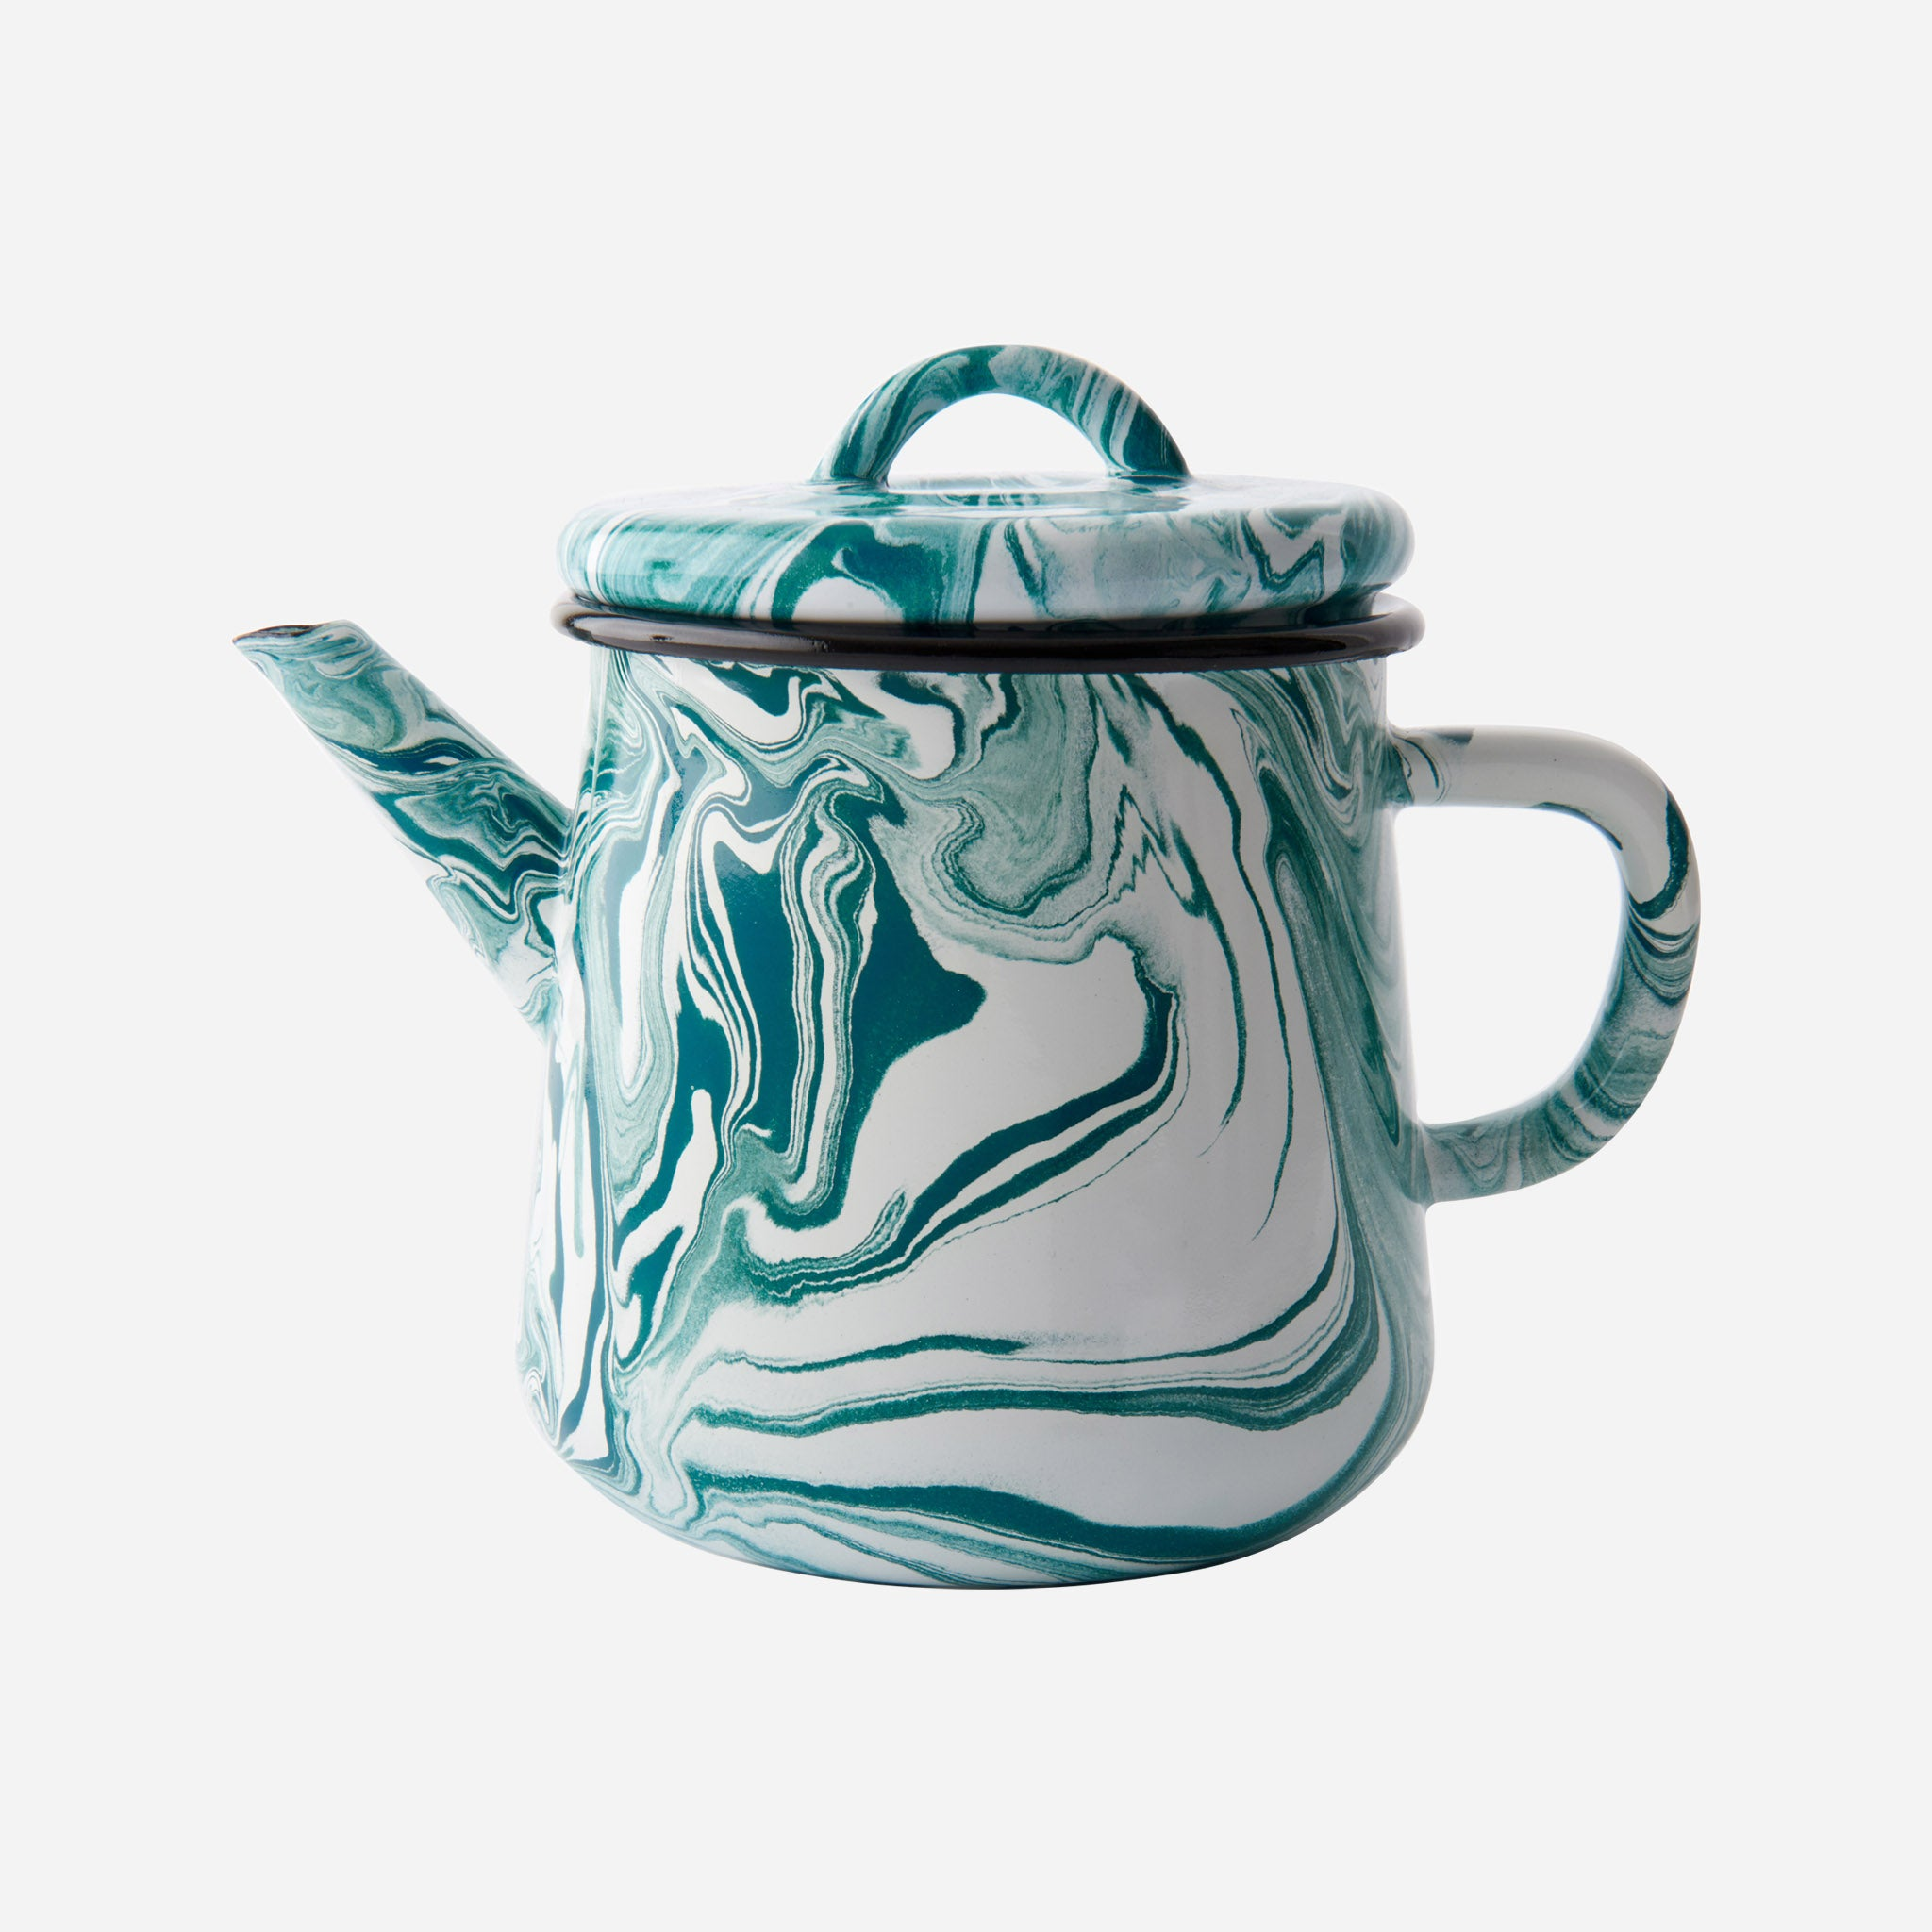 Bornn Teal and White Enamel Teapot - White Space Home